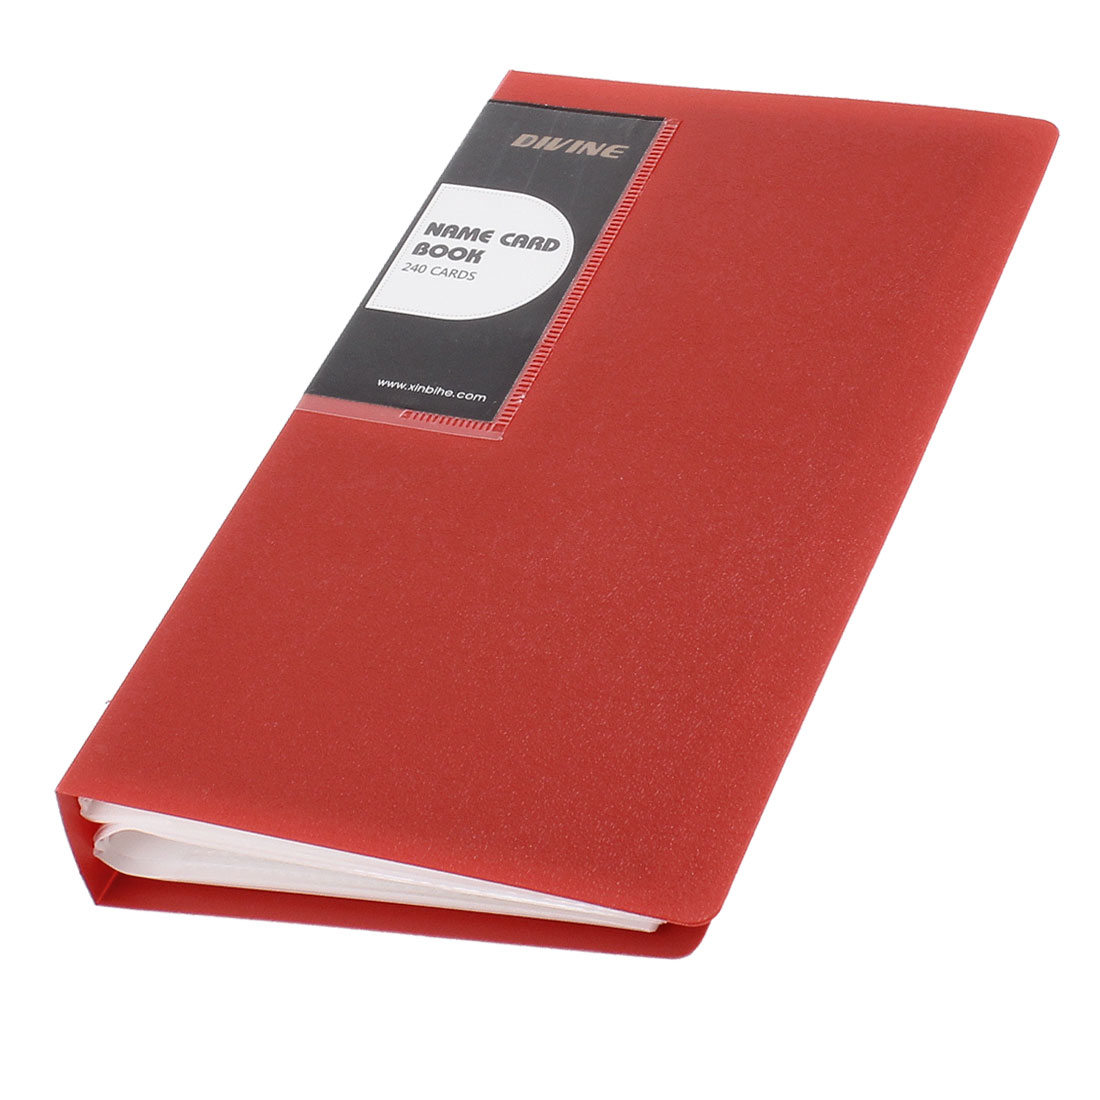 Notebook Shaped 240 Pcs Capacity Business Card Holder Red